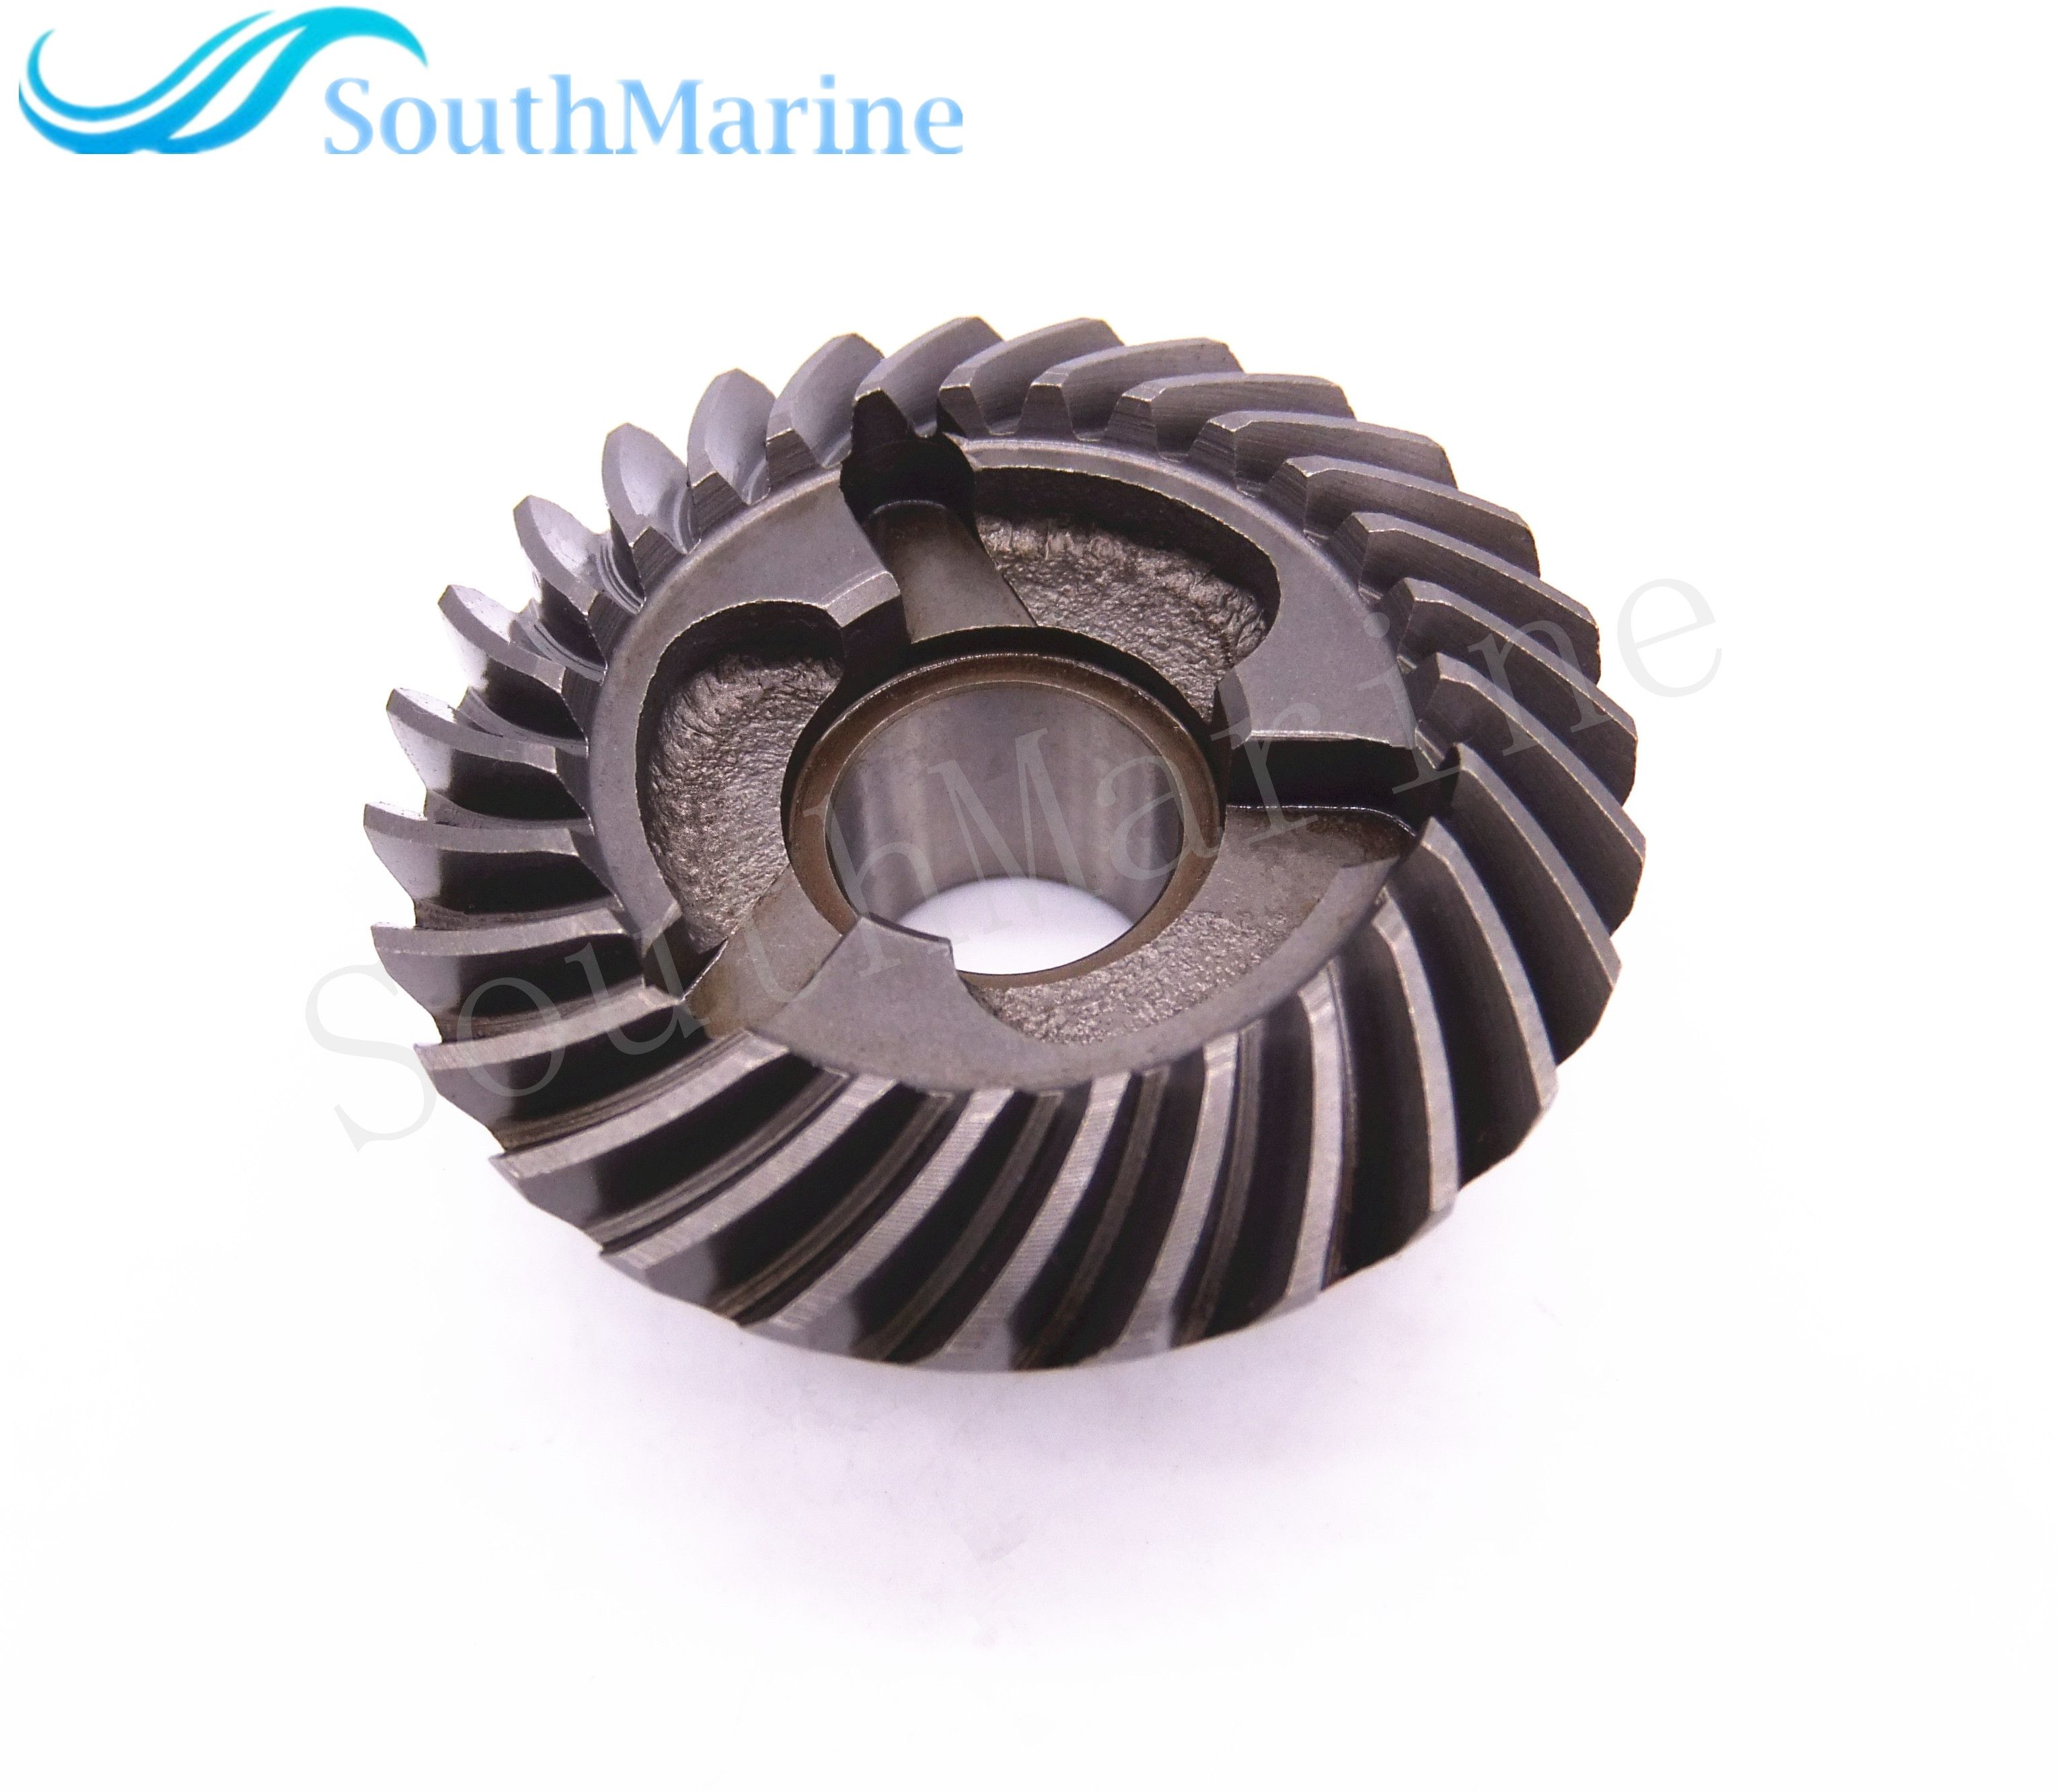 F8 04000014 reverse gear for parsun outboard engine f8 f98 t6 t8 t9 f8 04000014 reverse gear for parsun outboard engine f8 f98 t6 t8 t9 ccuart Images